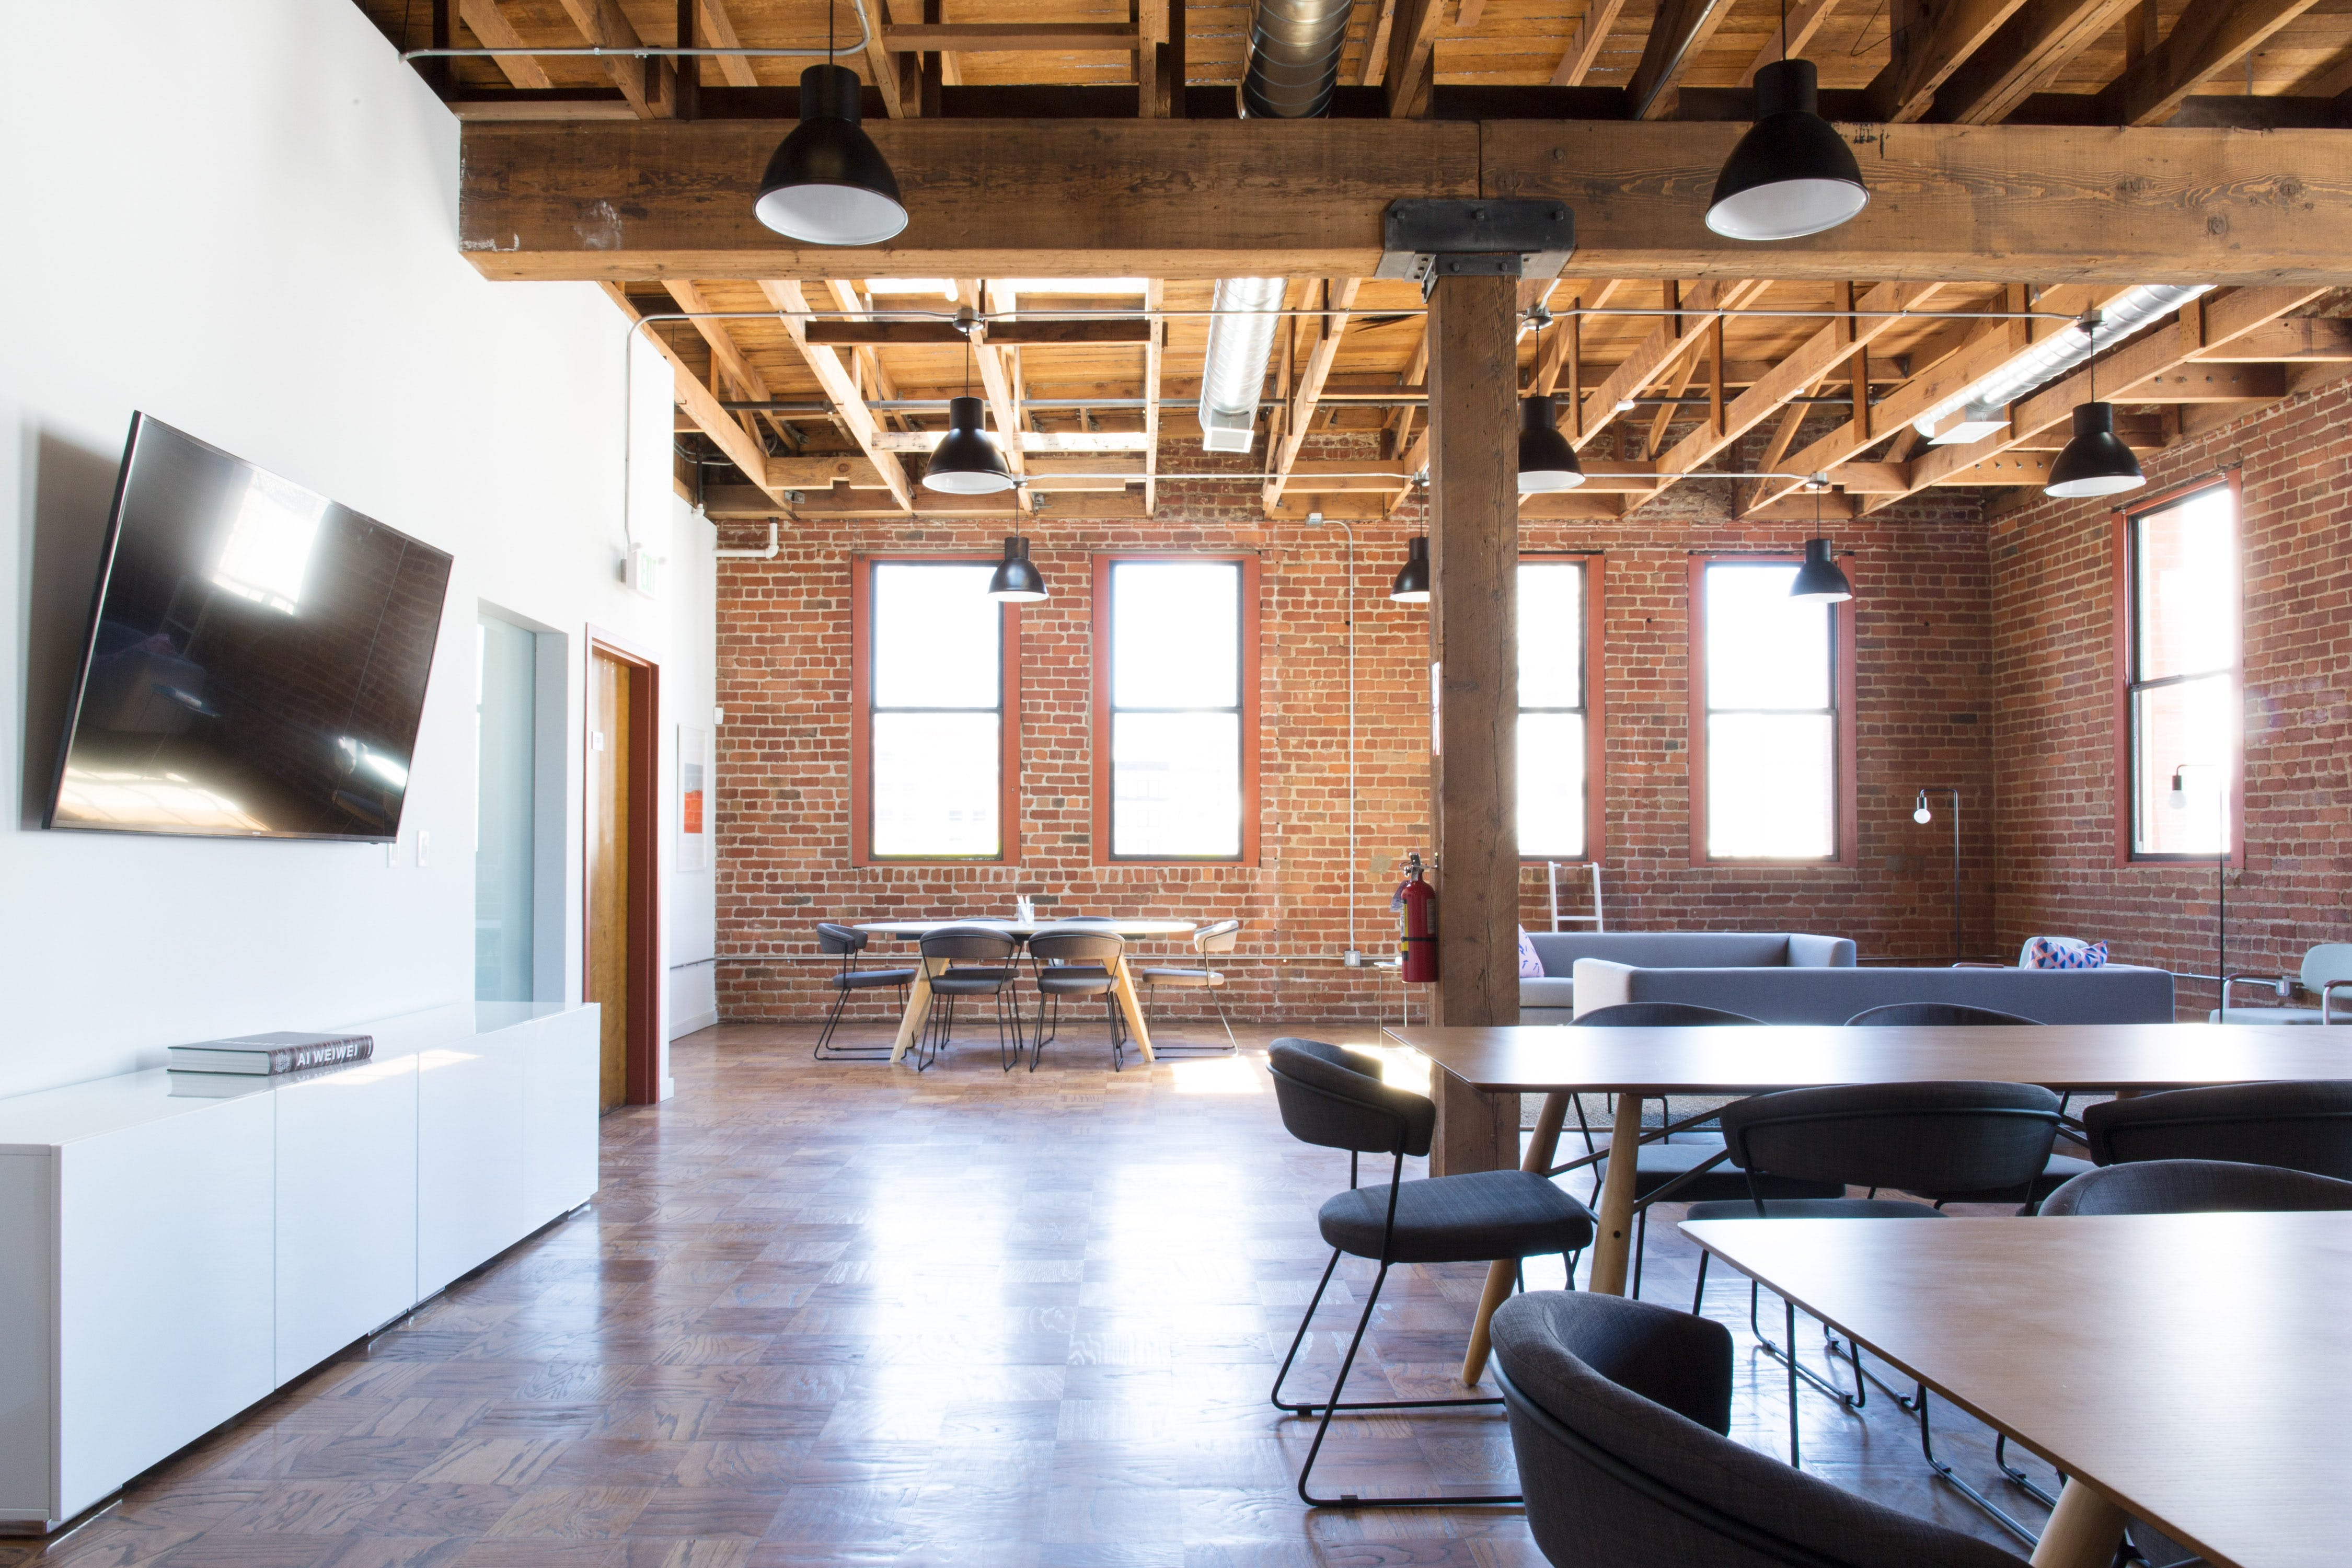 launch_event space at 433 Natoma